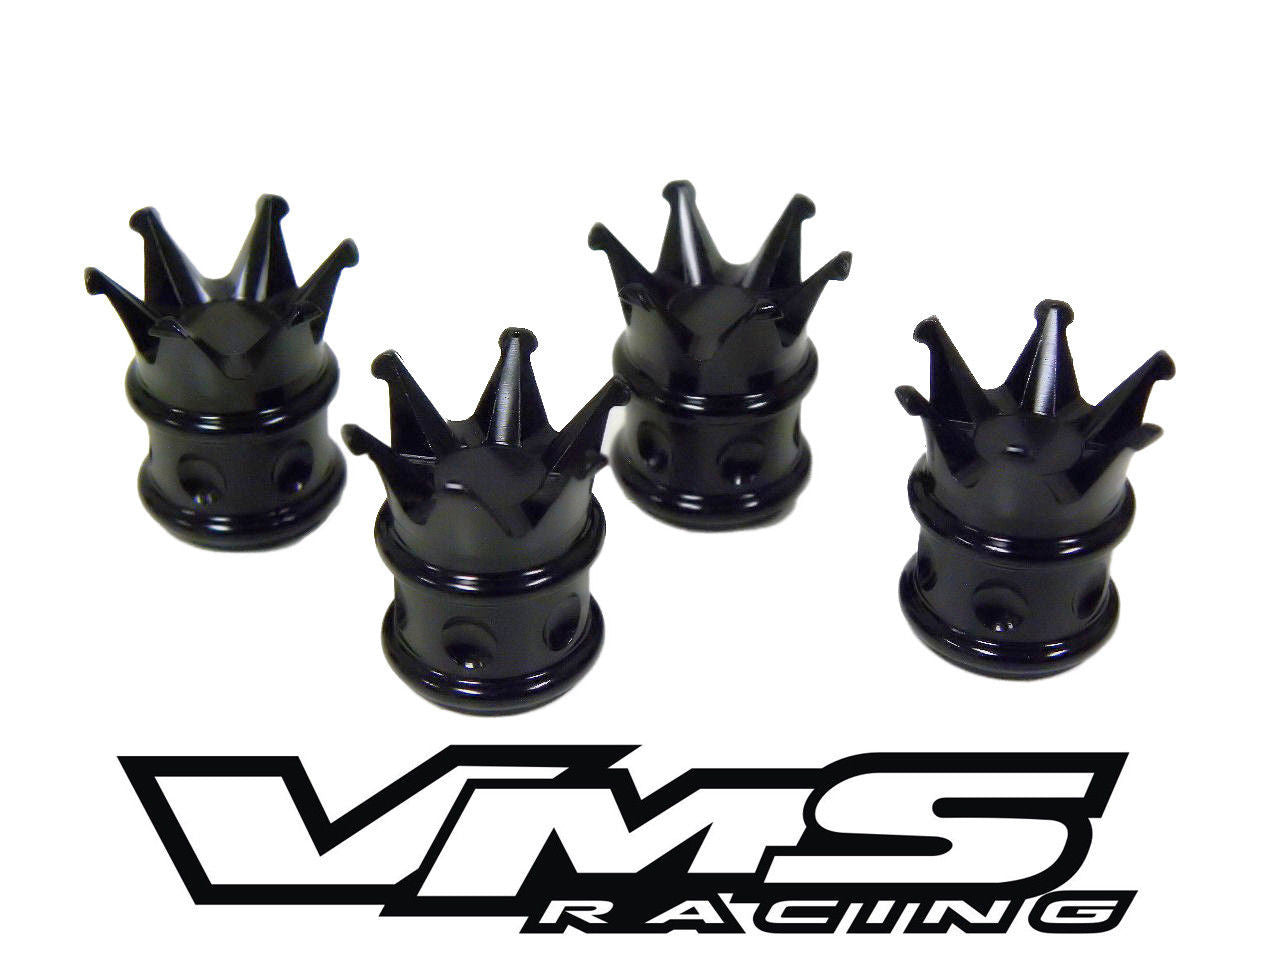 CROWN KING BILLET ALUMINUM AIR VALVE STEM CAP KIT AVAILABLE IN BLACK on fuse caps, bmw valve caps, saleen center caps, nut caps, grease caps, presta valve caps, cylinder caps, radiator caps,